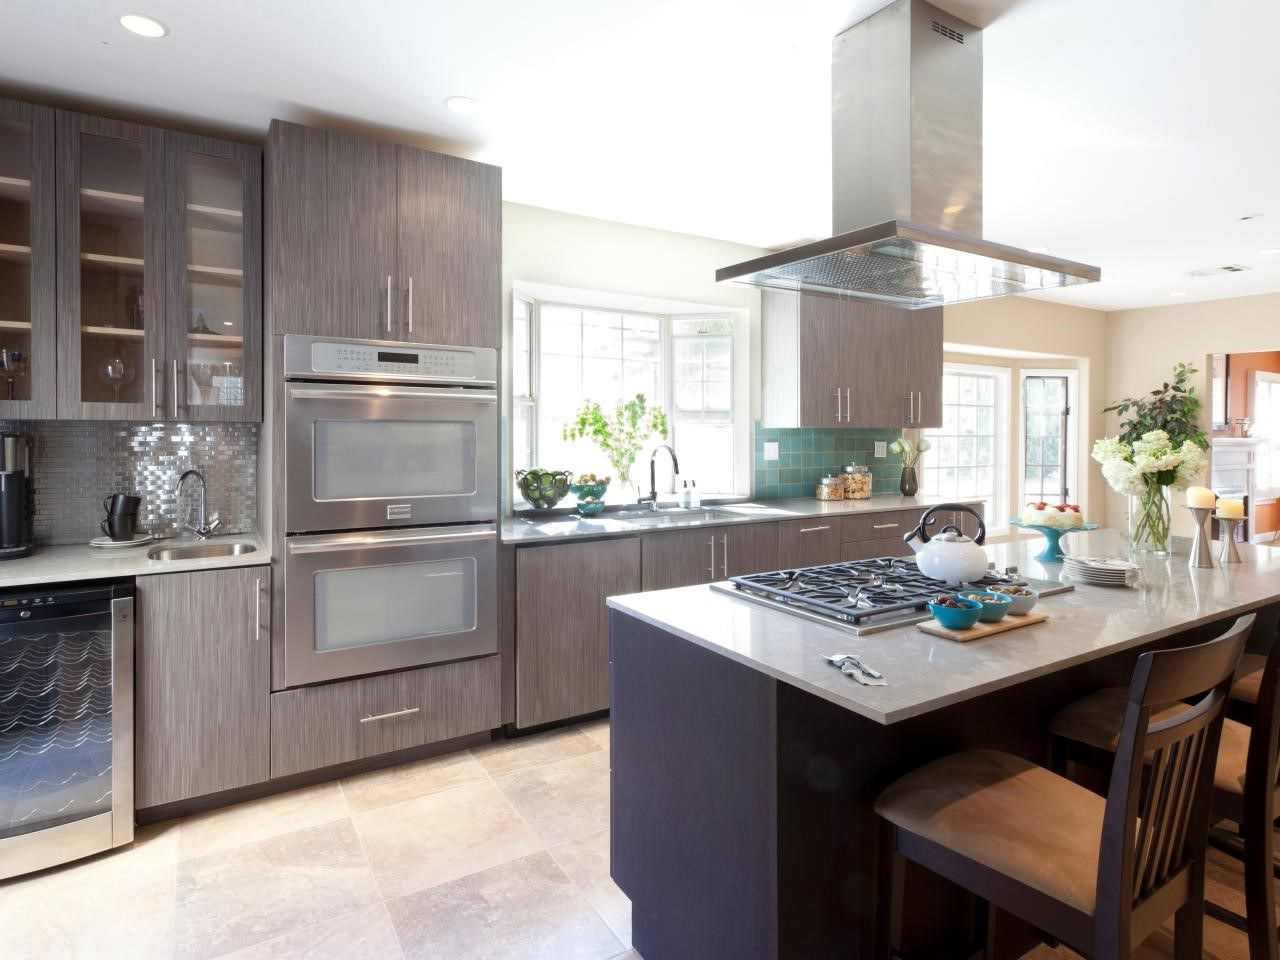 Should Kitchen Cabinets Go To The Ceiling Kitchen Cabinet Design Tool Home Depot Kitchendesigntoolh Kitchen Tools Design Kitchen Design Best Kitchen Designs